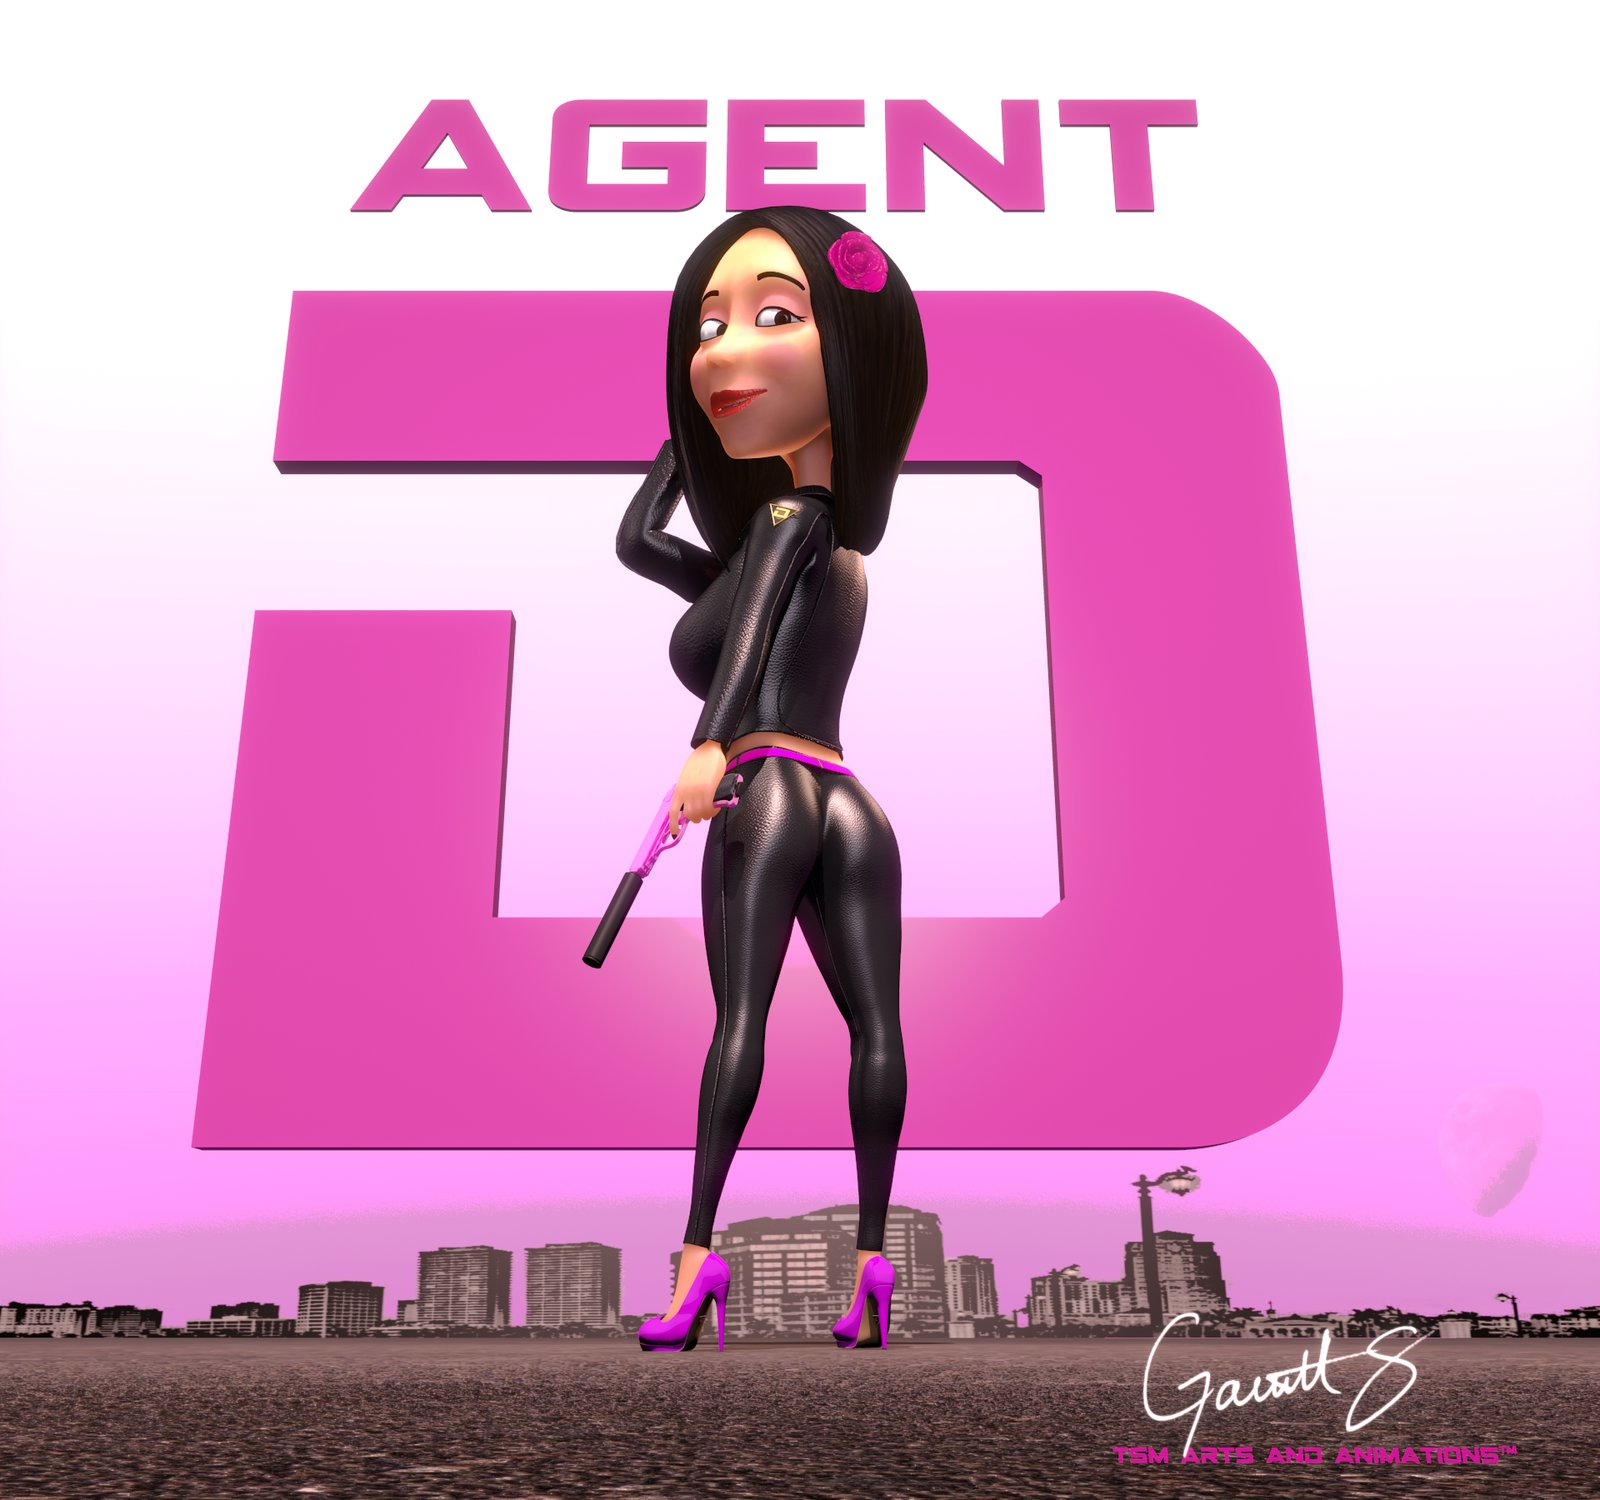 Agent D character poster